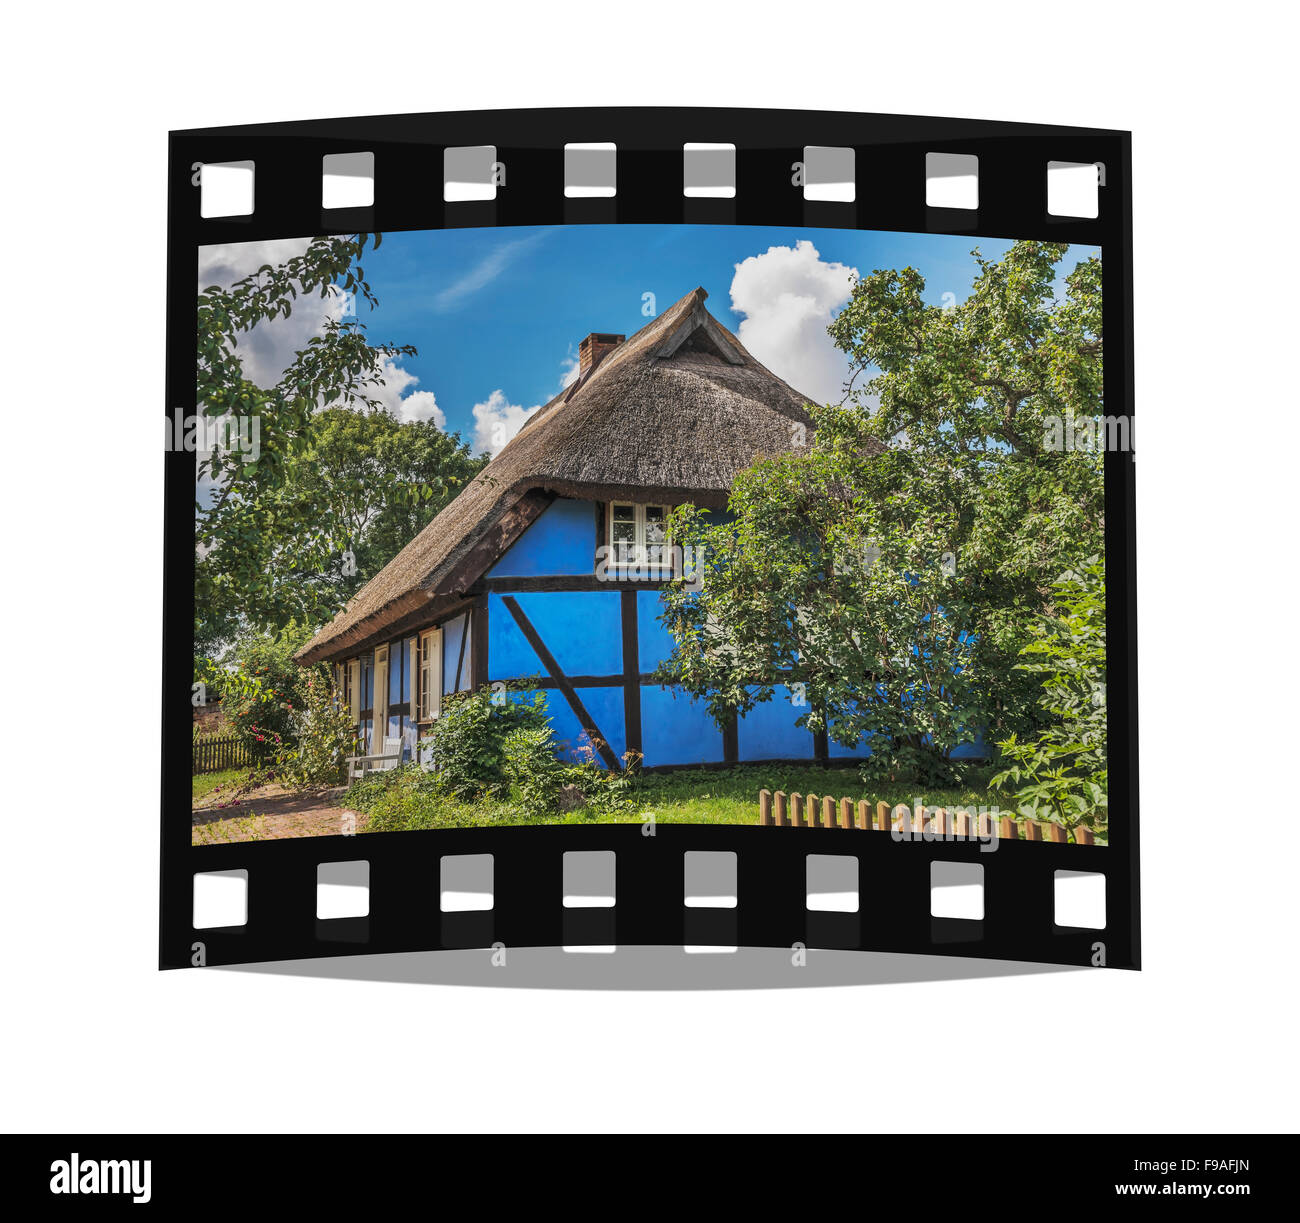 Blue half-timbered house with thatched roof in Warthe, Island of Usedom, Mecklenburg-Western Pomerania, Germany, - Stock Image